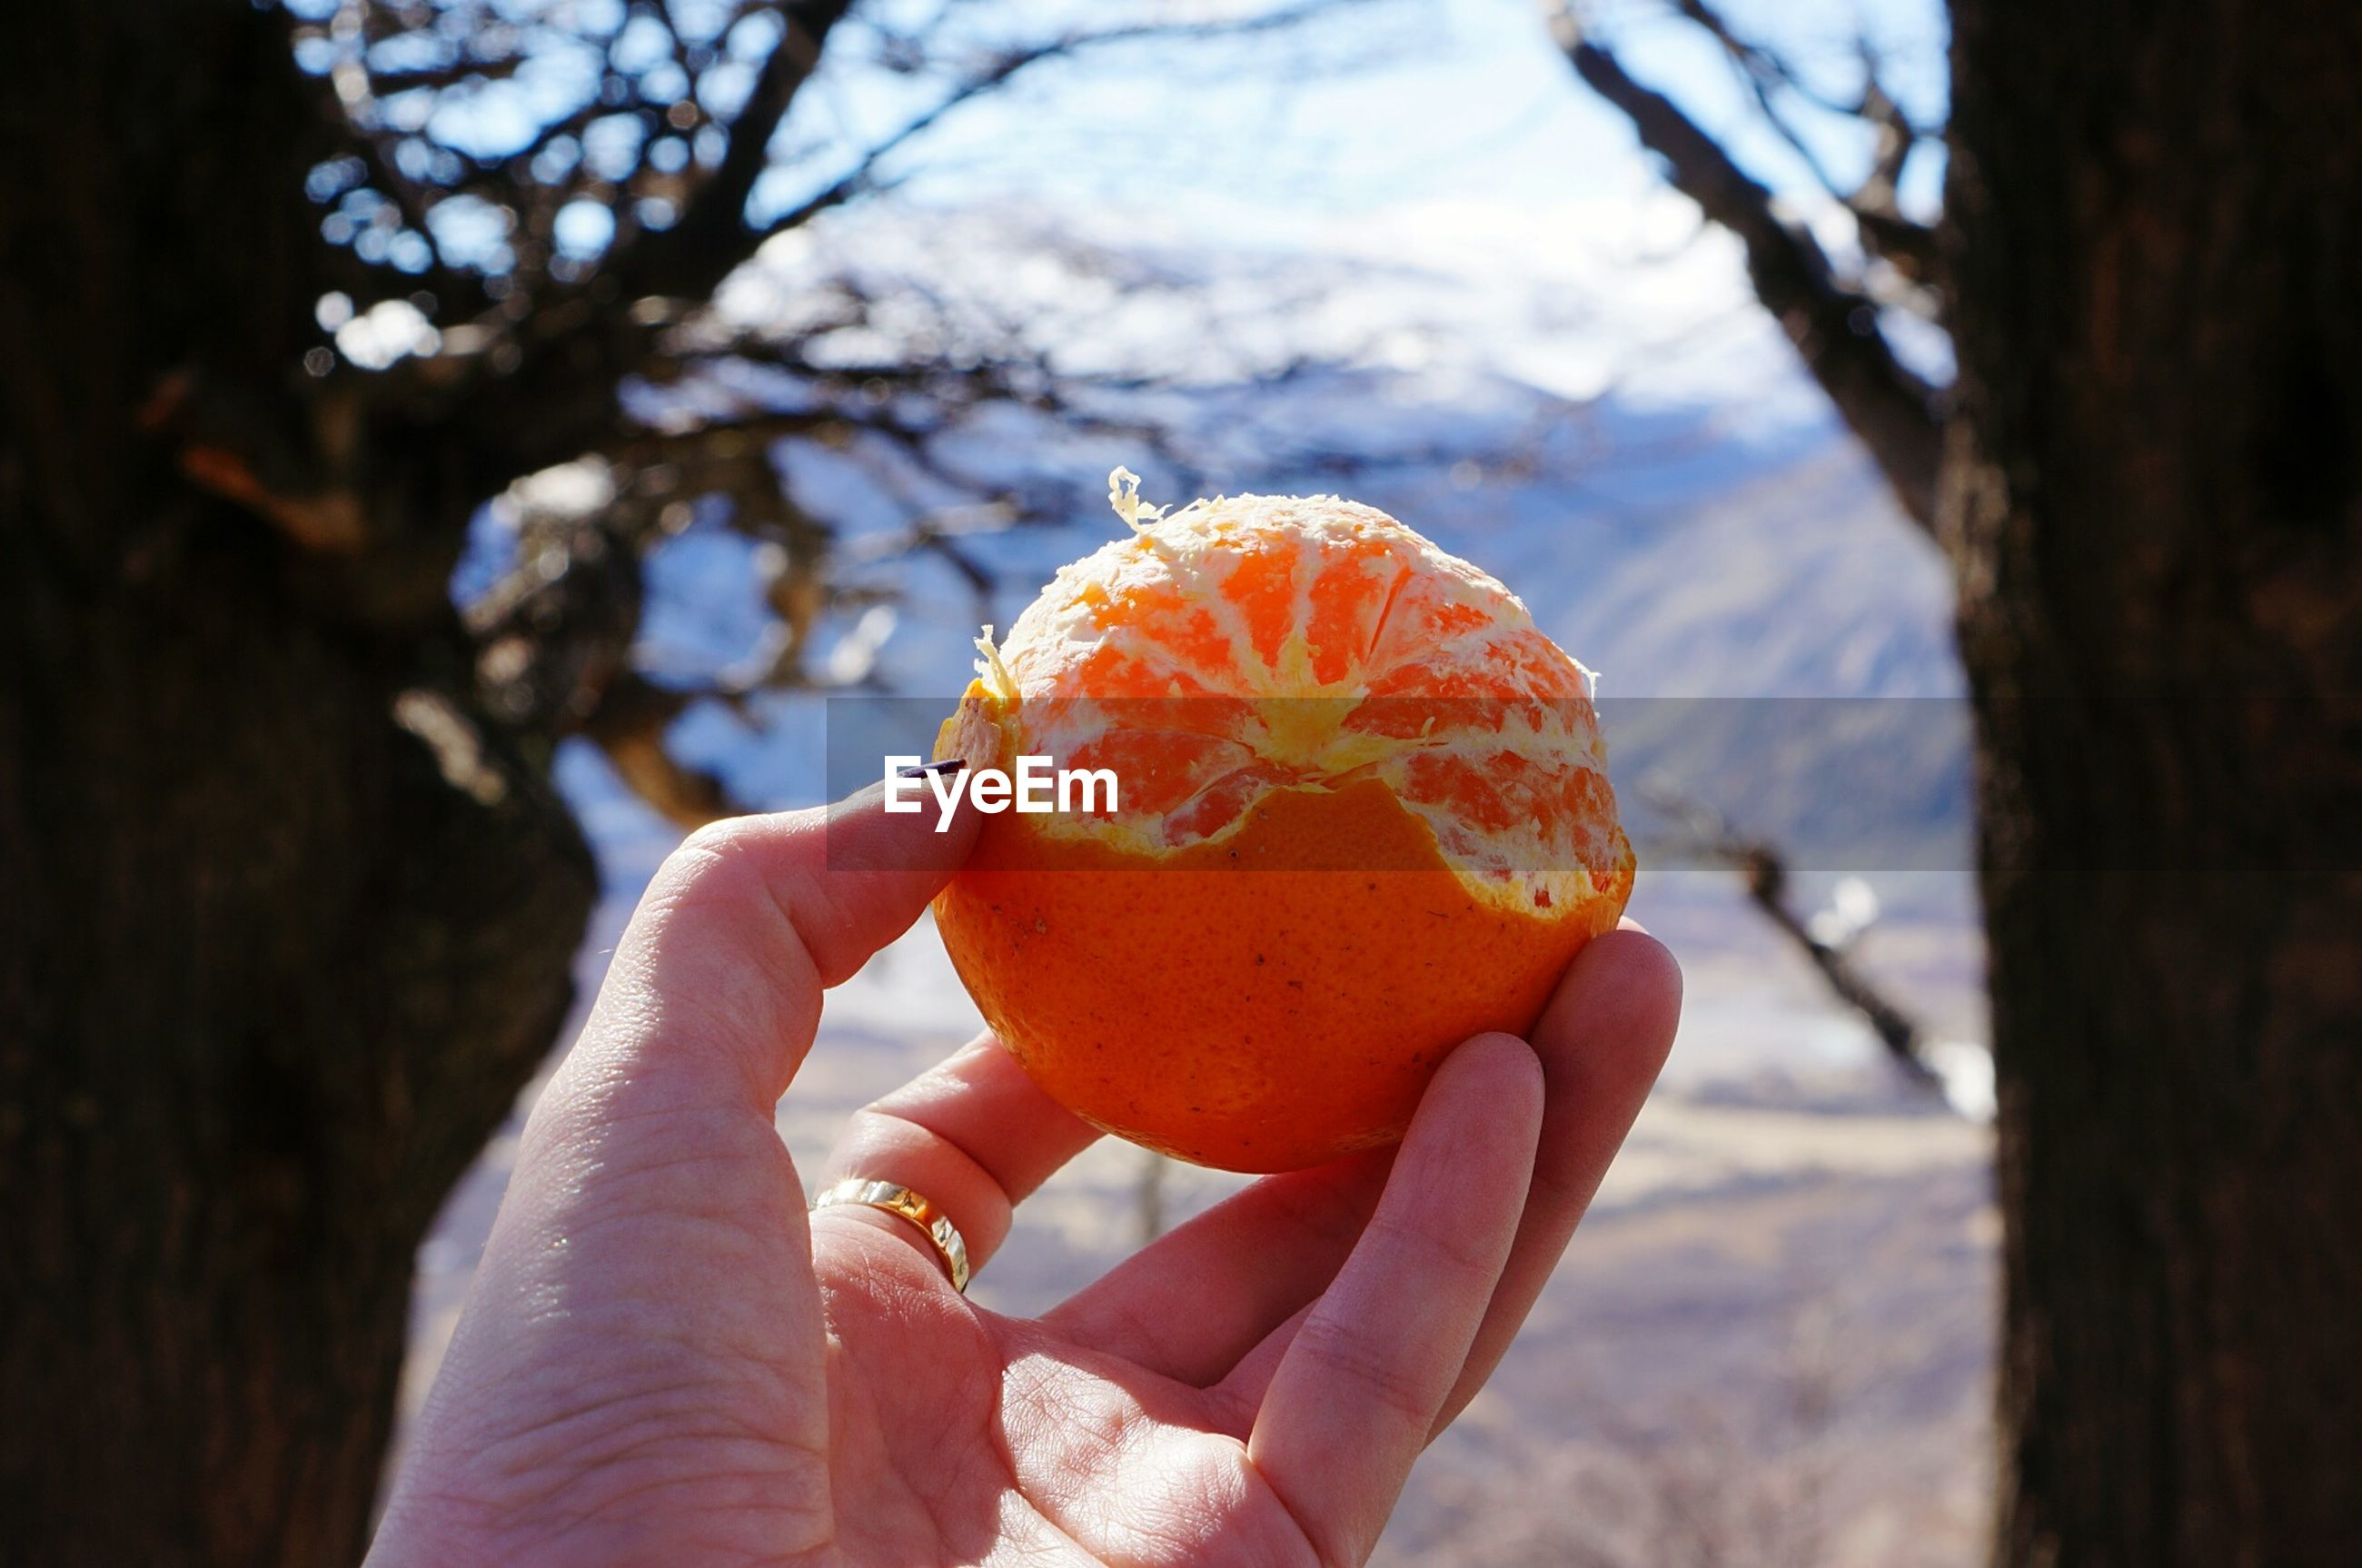 Cropped hand of woman holding orange fruit outdoors